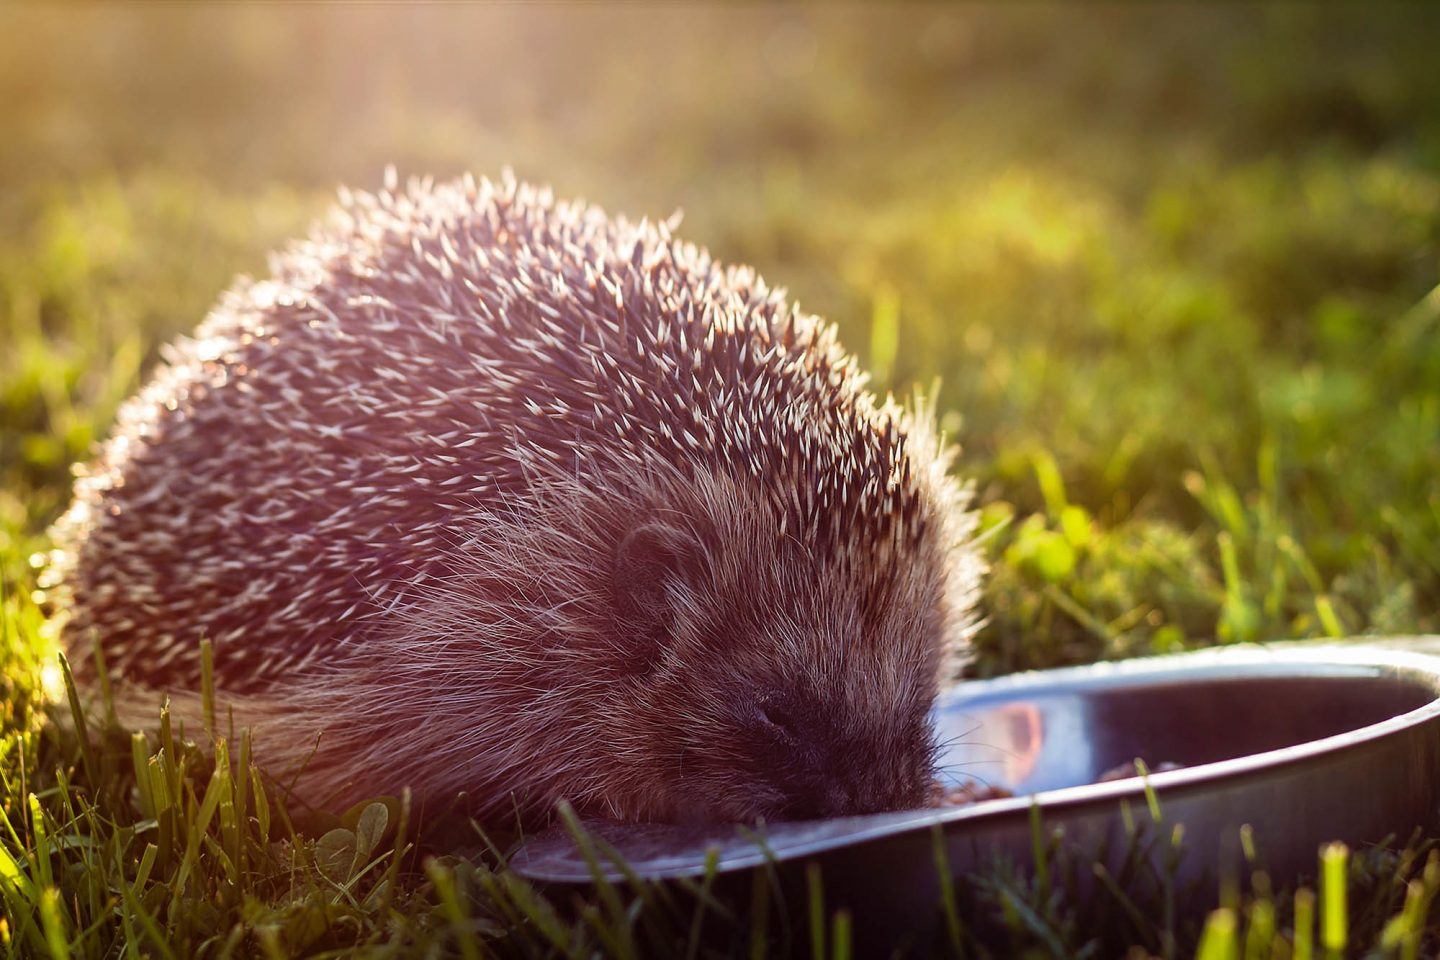 Hedgehog Unsplash 2